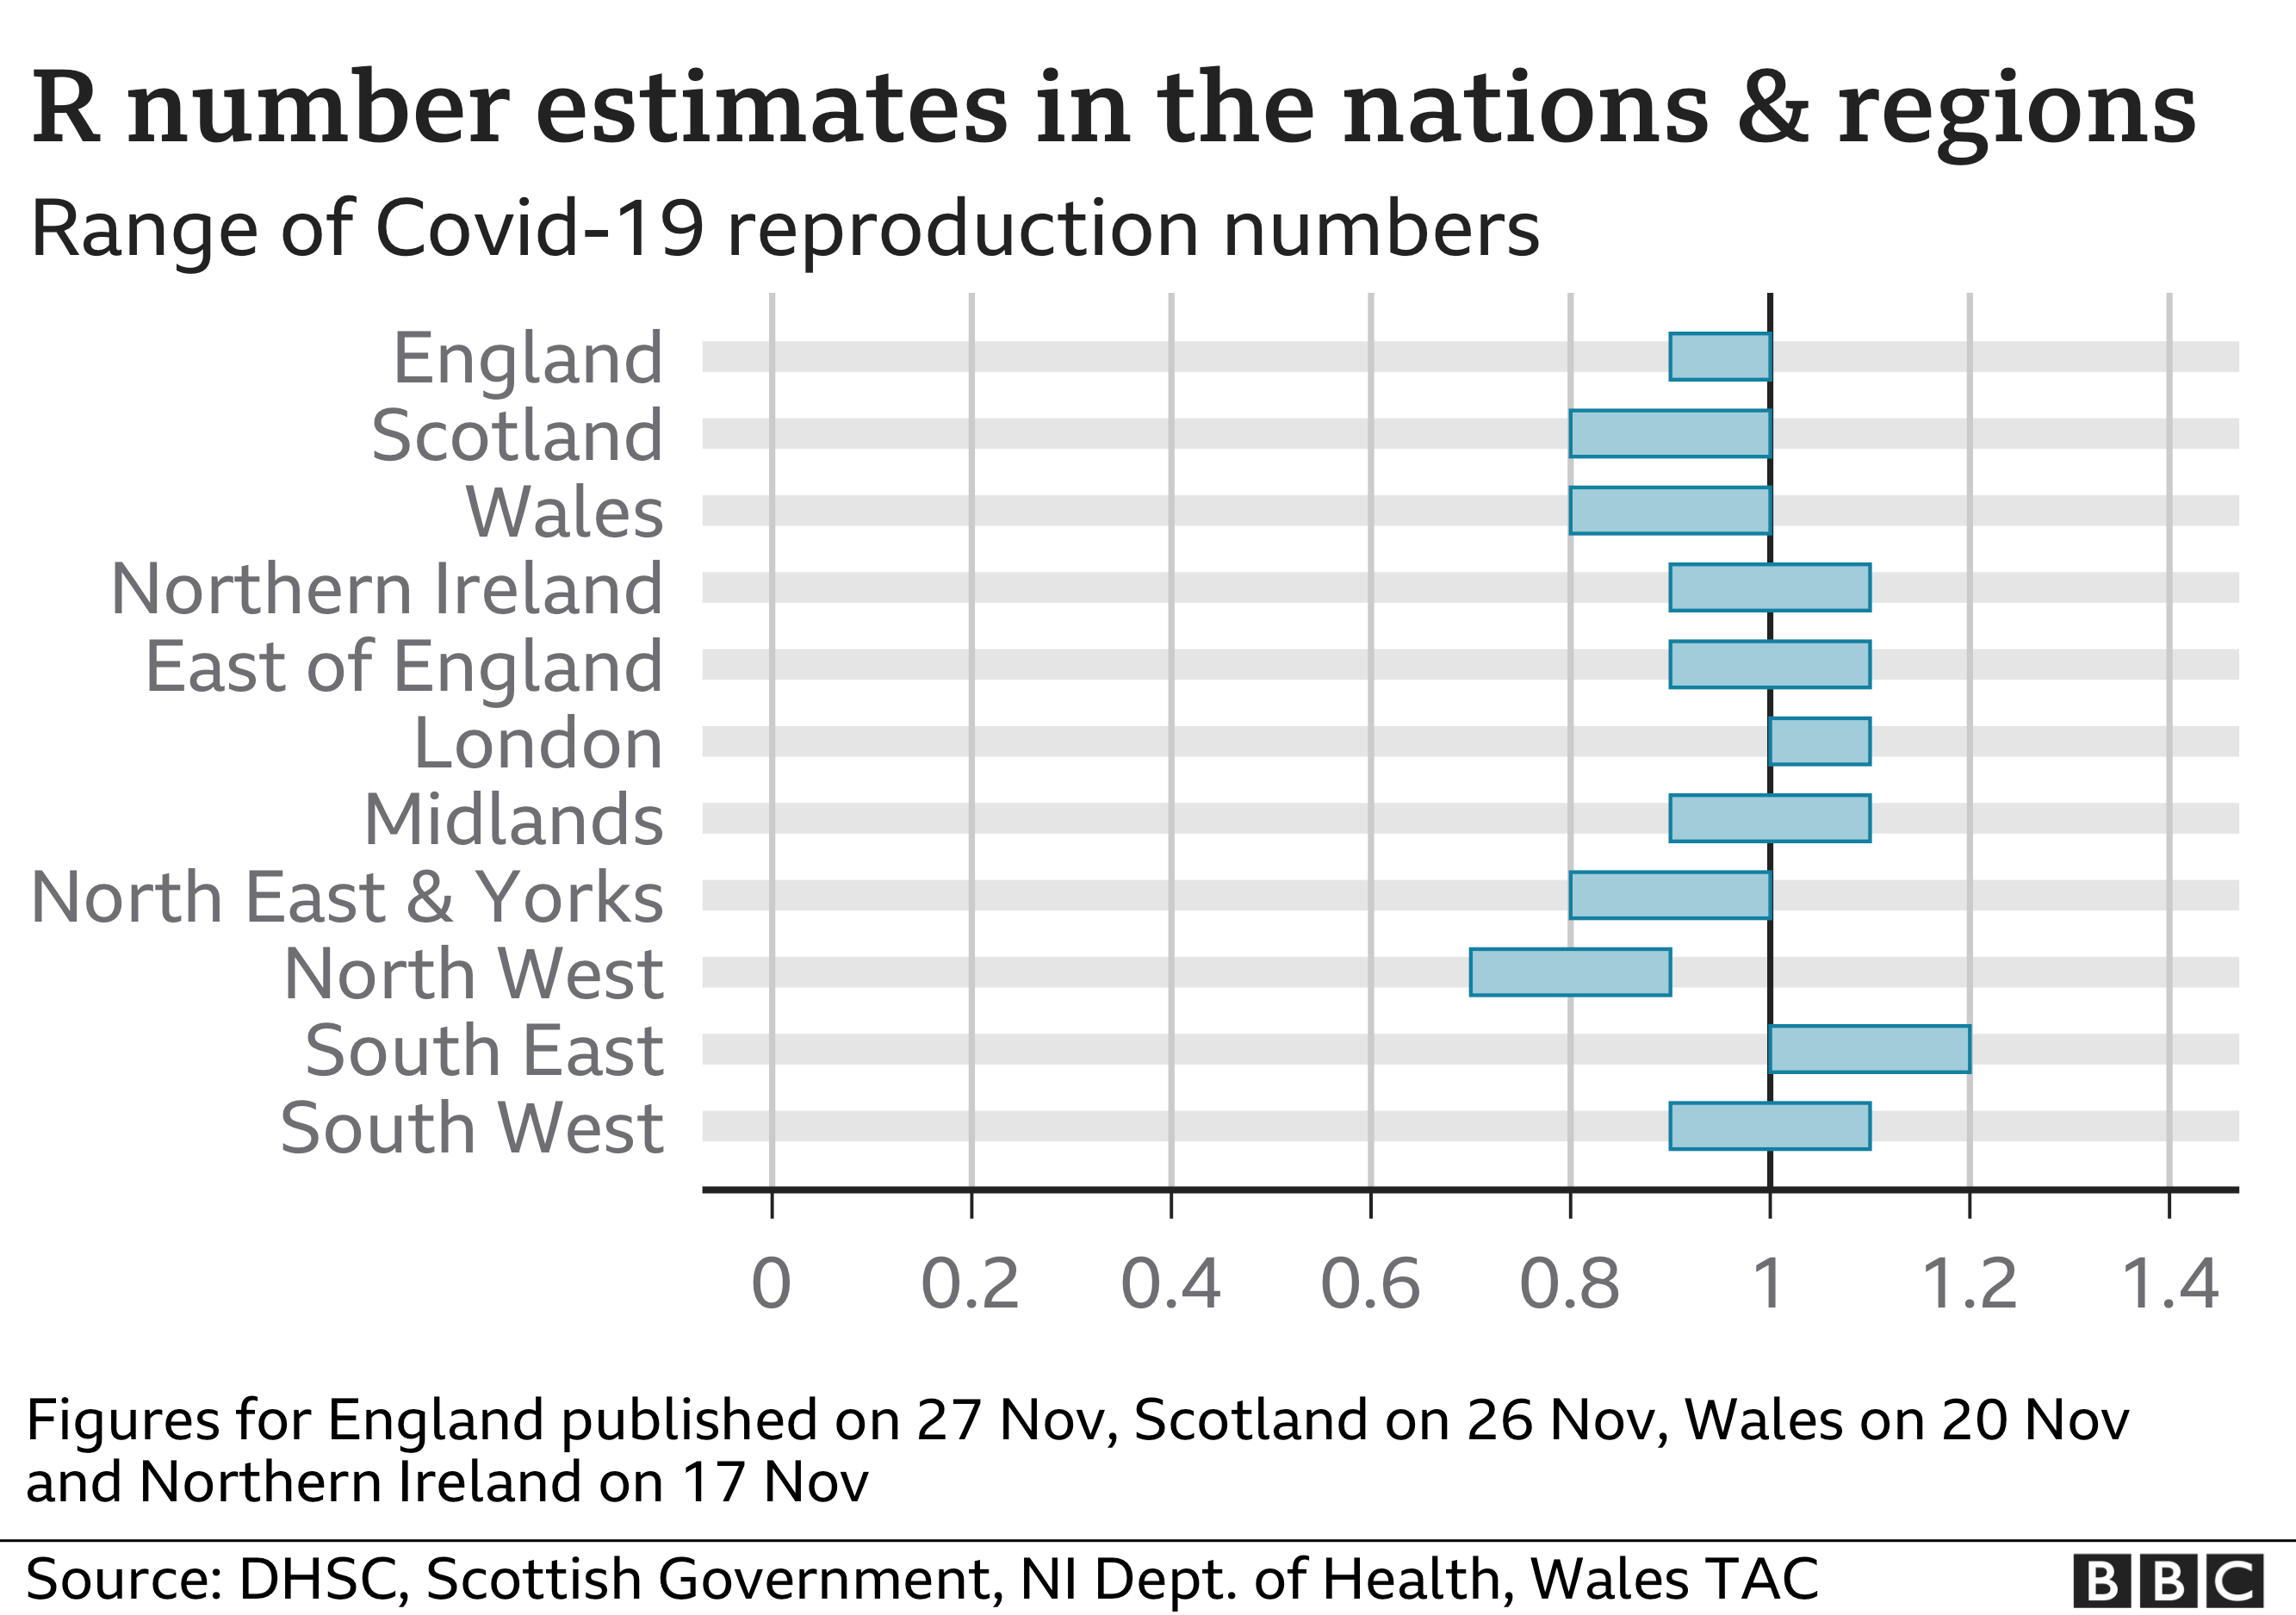 Graphic showing the estimated R number in the nations and regions of the UK